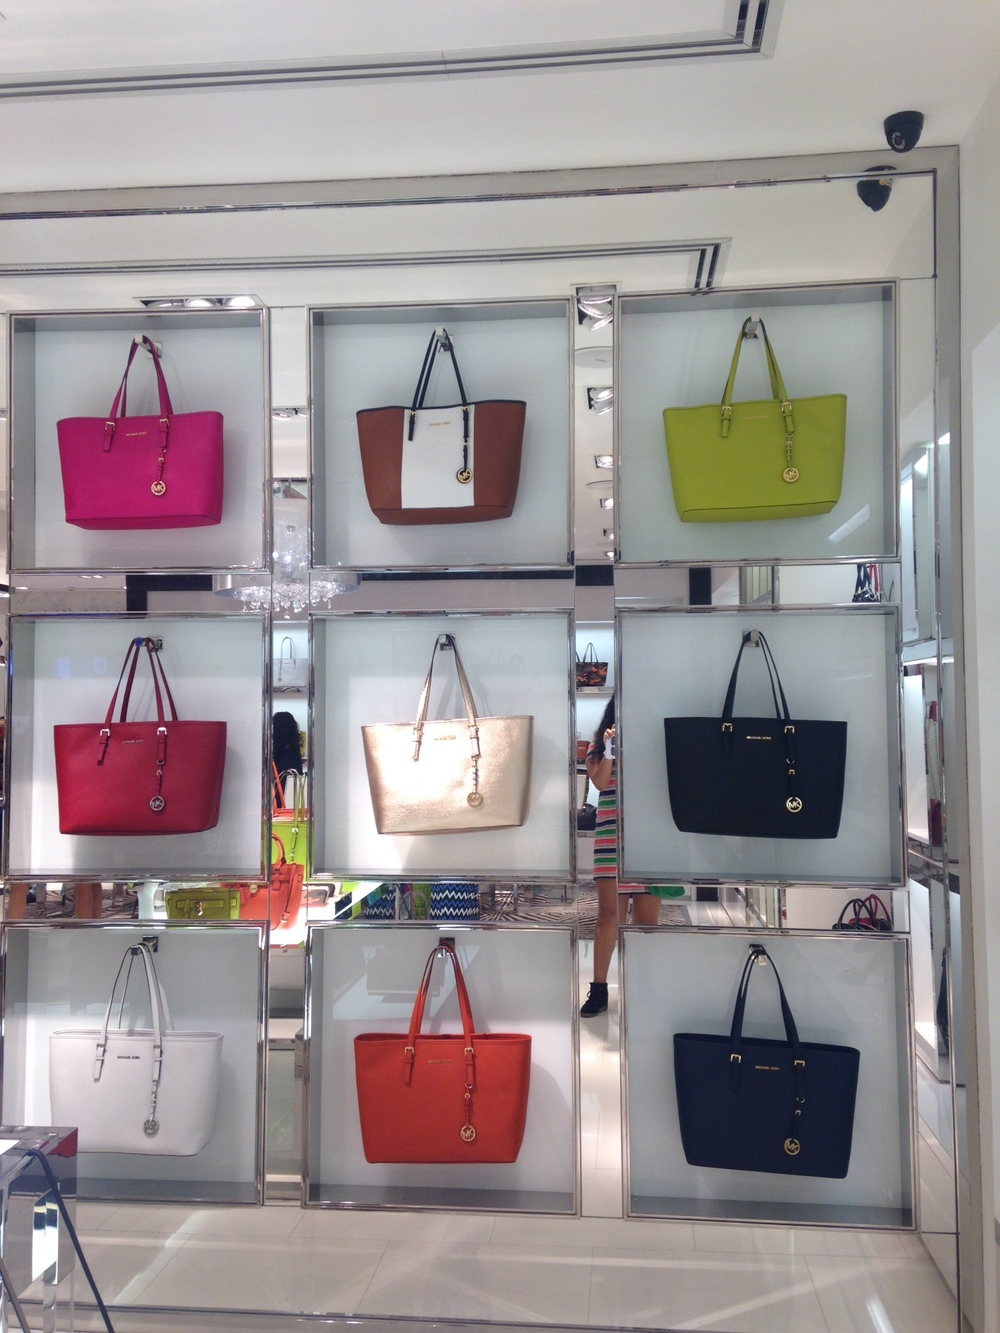 Tote Wall at the Michael Kors store in Palladium